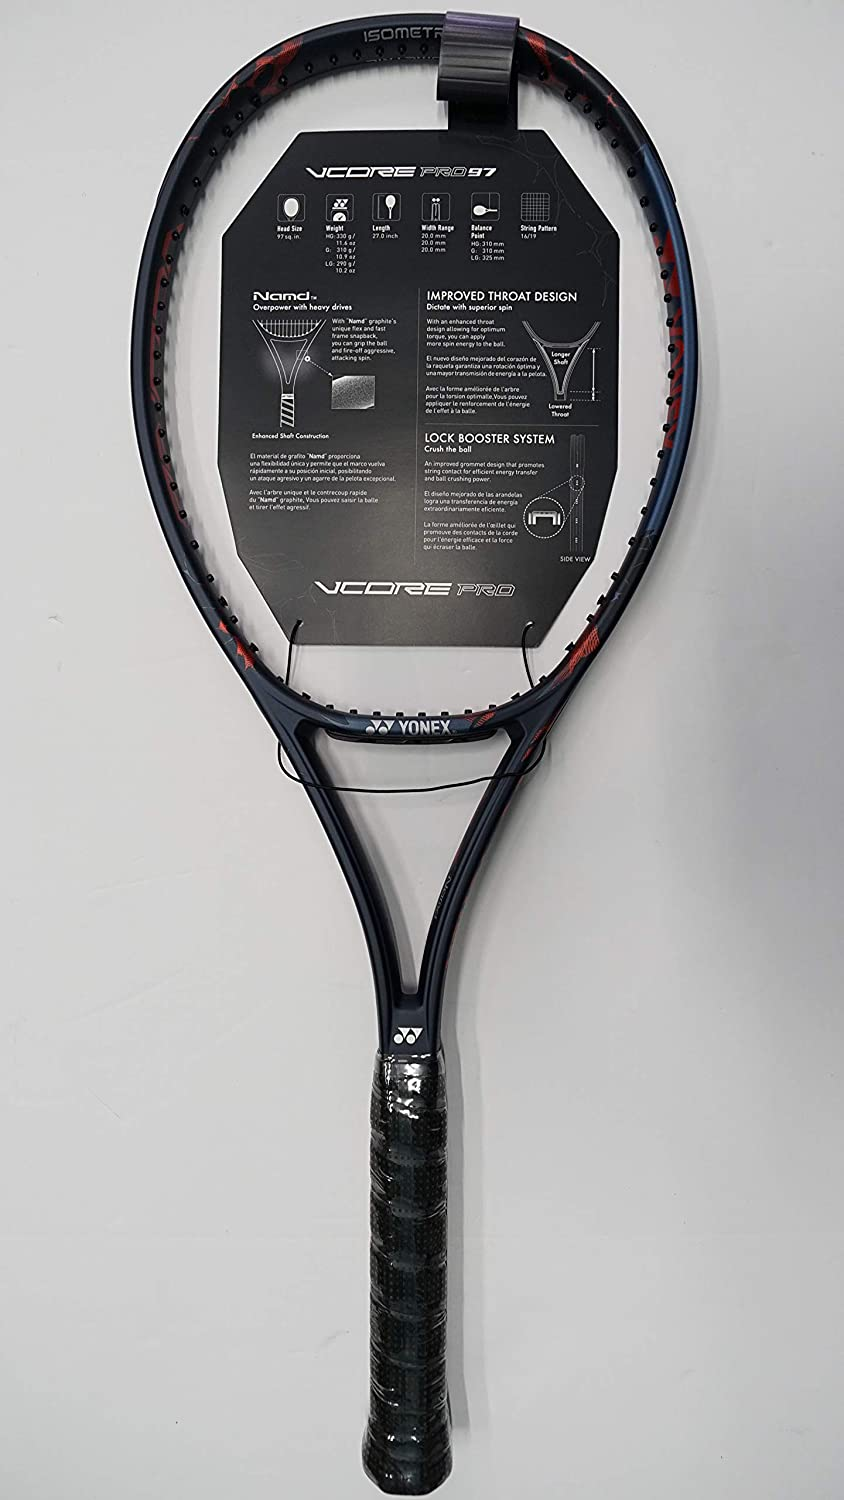 Amazon.com : Yonex Vcore Pro 97 310g Tennis Racquet, Free Synthetic Gut String (#2 [4 1/4]) : Sports & Outdoors